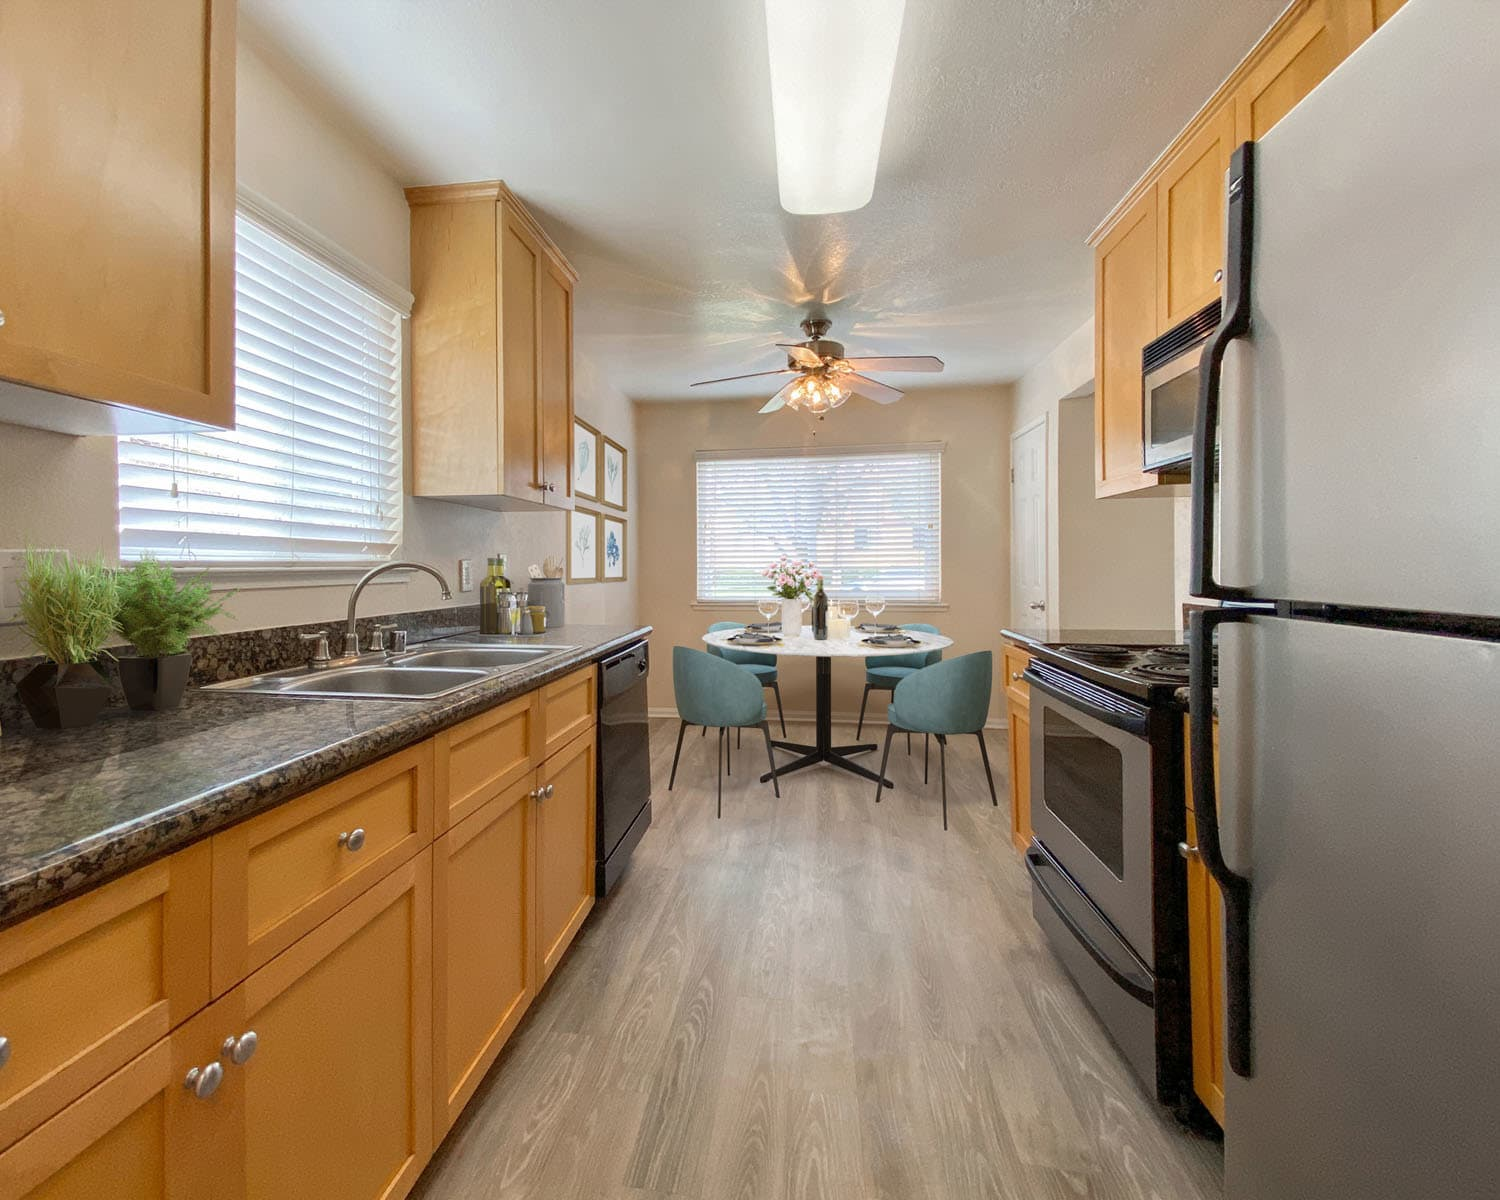 Hardwood flooring and stainless-steel appliances in a model apartment's kitchen at Pleasanton Place Apartment Homes in Pleasanton, California